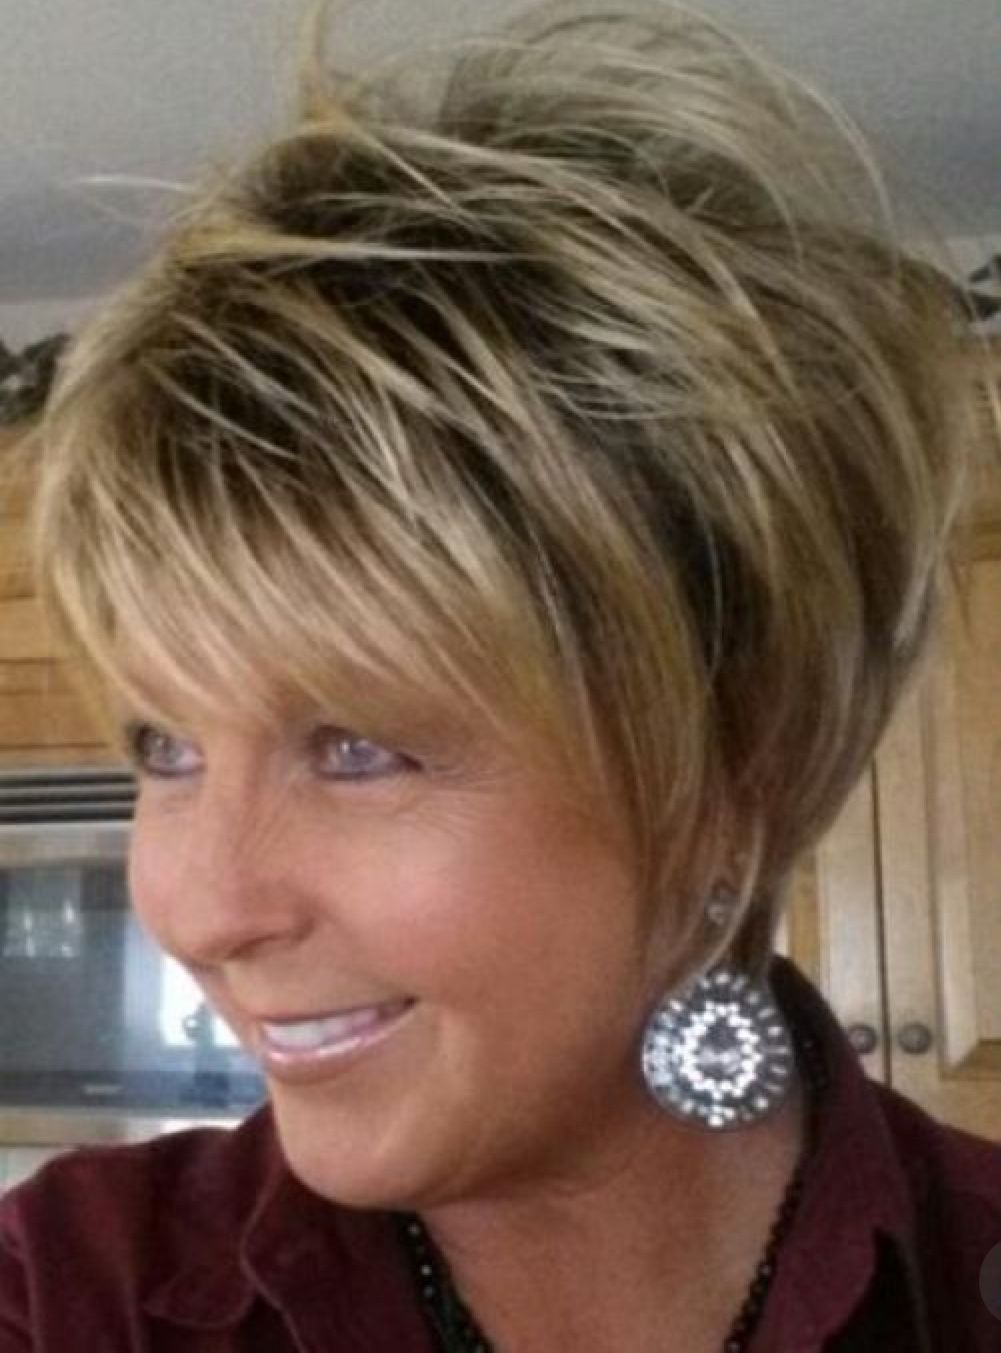 2019 wohndesign pin by annette stahl on hair  pinterest  hair style haircuts and